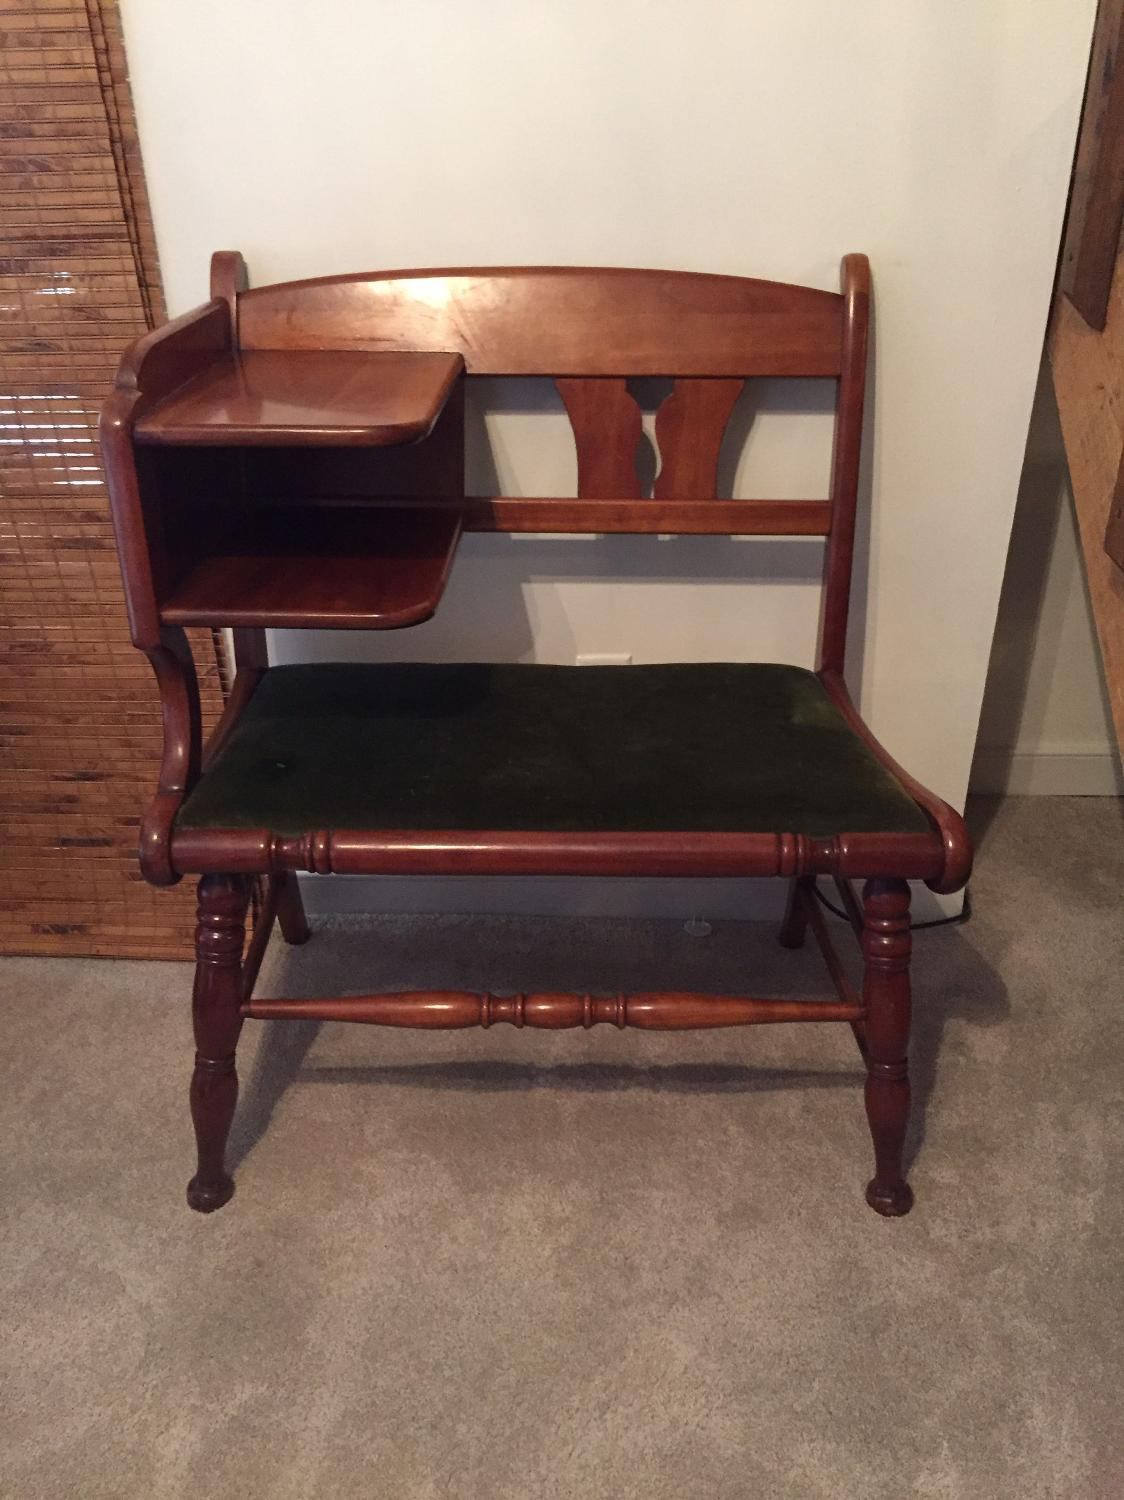 Find More Vintage Telephone Table For Sale At Up To 90 Off Richmond Va